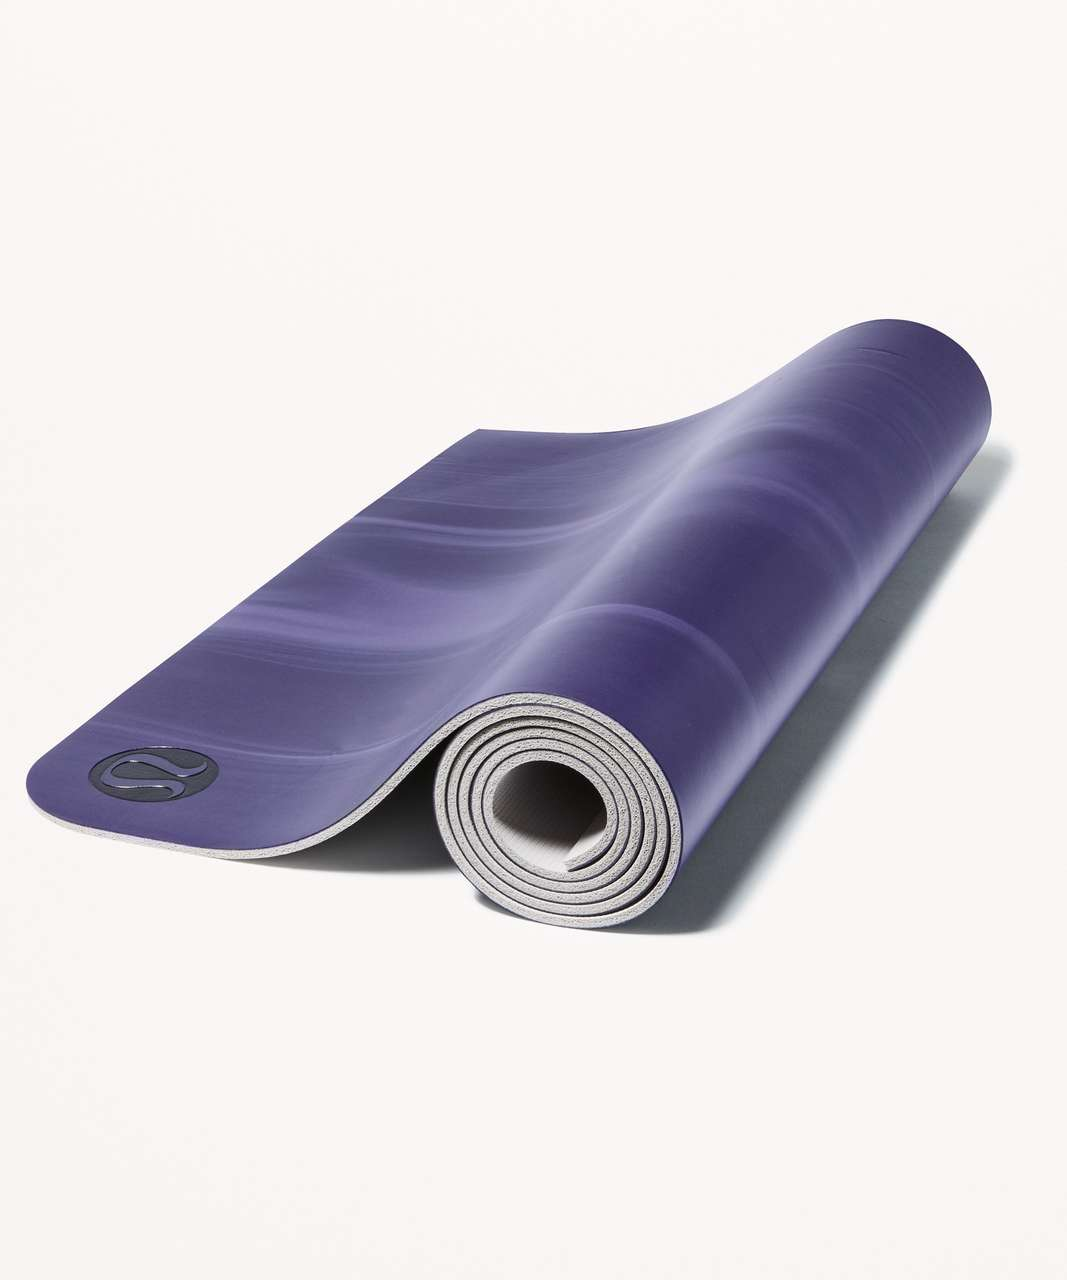 858cd39326 Lululemon The Reversible Mat 5mm - Aeon / Viola / Chrome - lulu fanatics